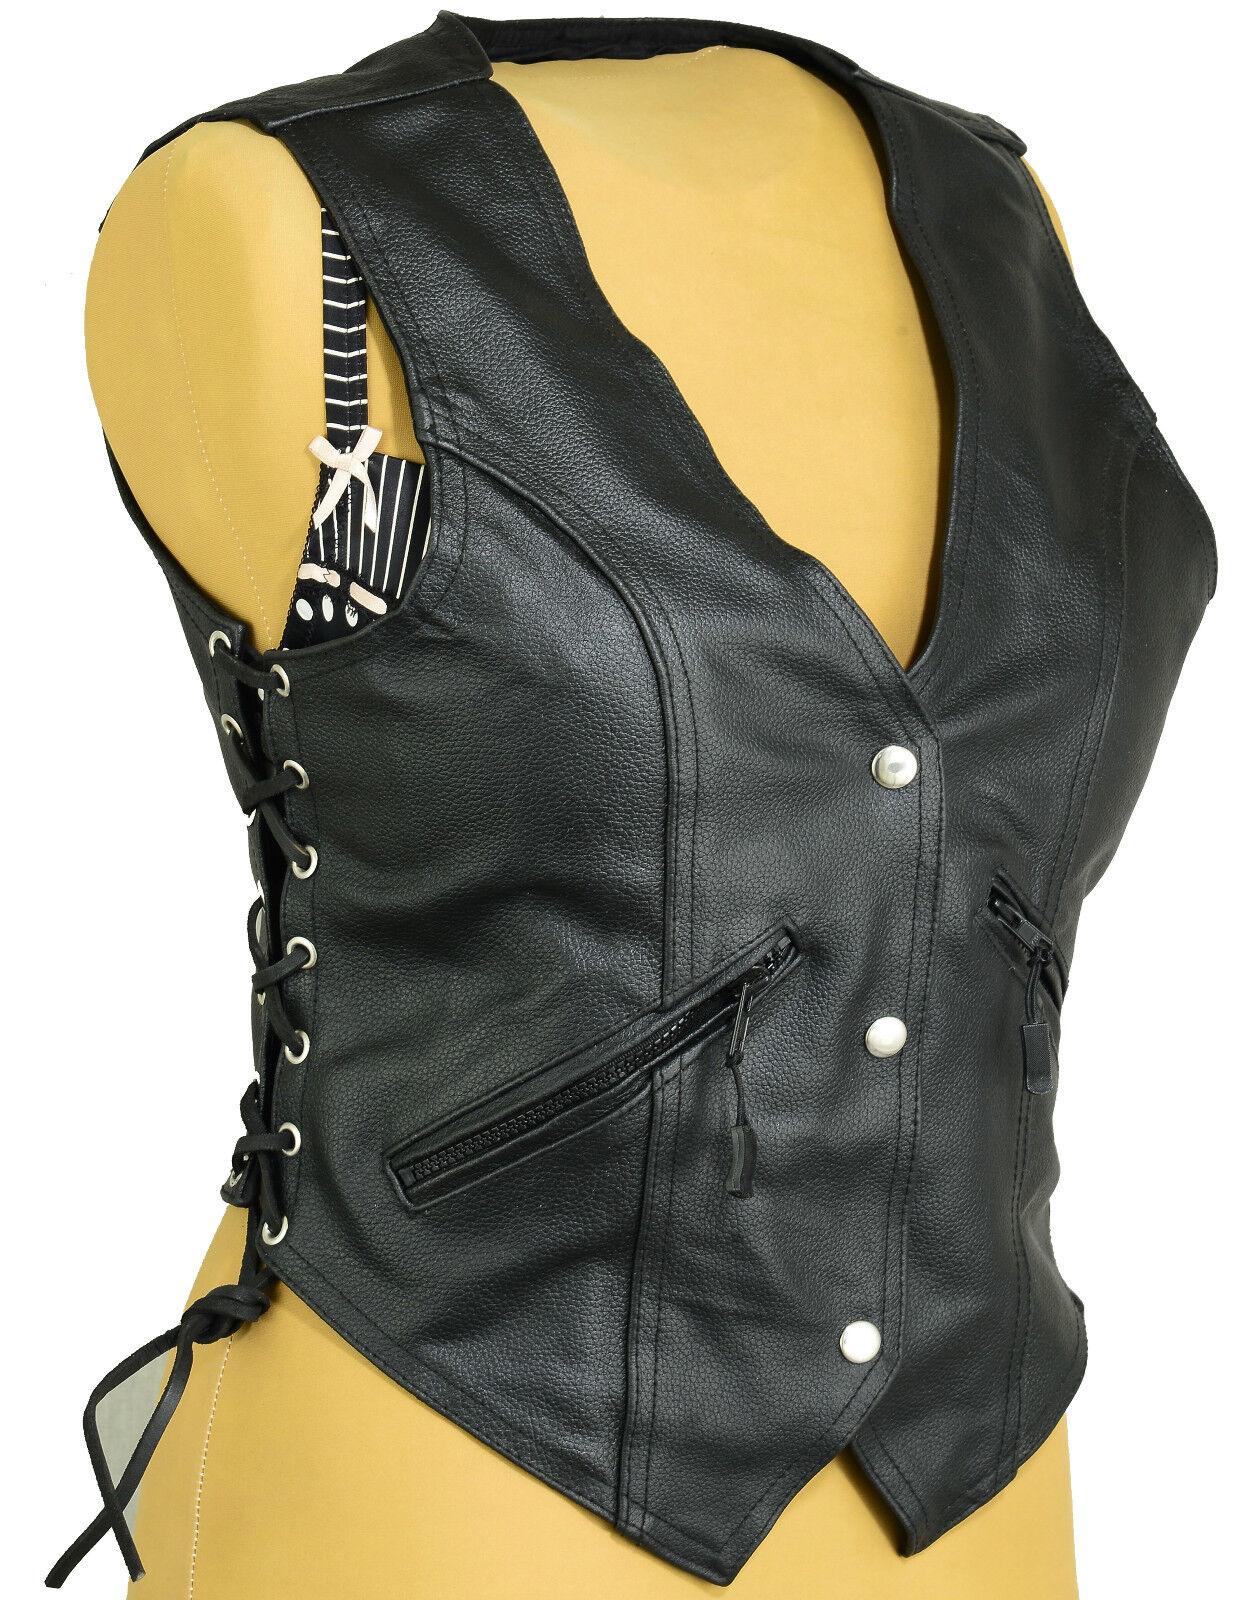 Womens Leather Fashion Vest Waistcoat Laced Sides Motorcycle Cruiser Top Vintage